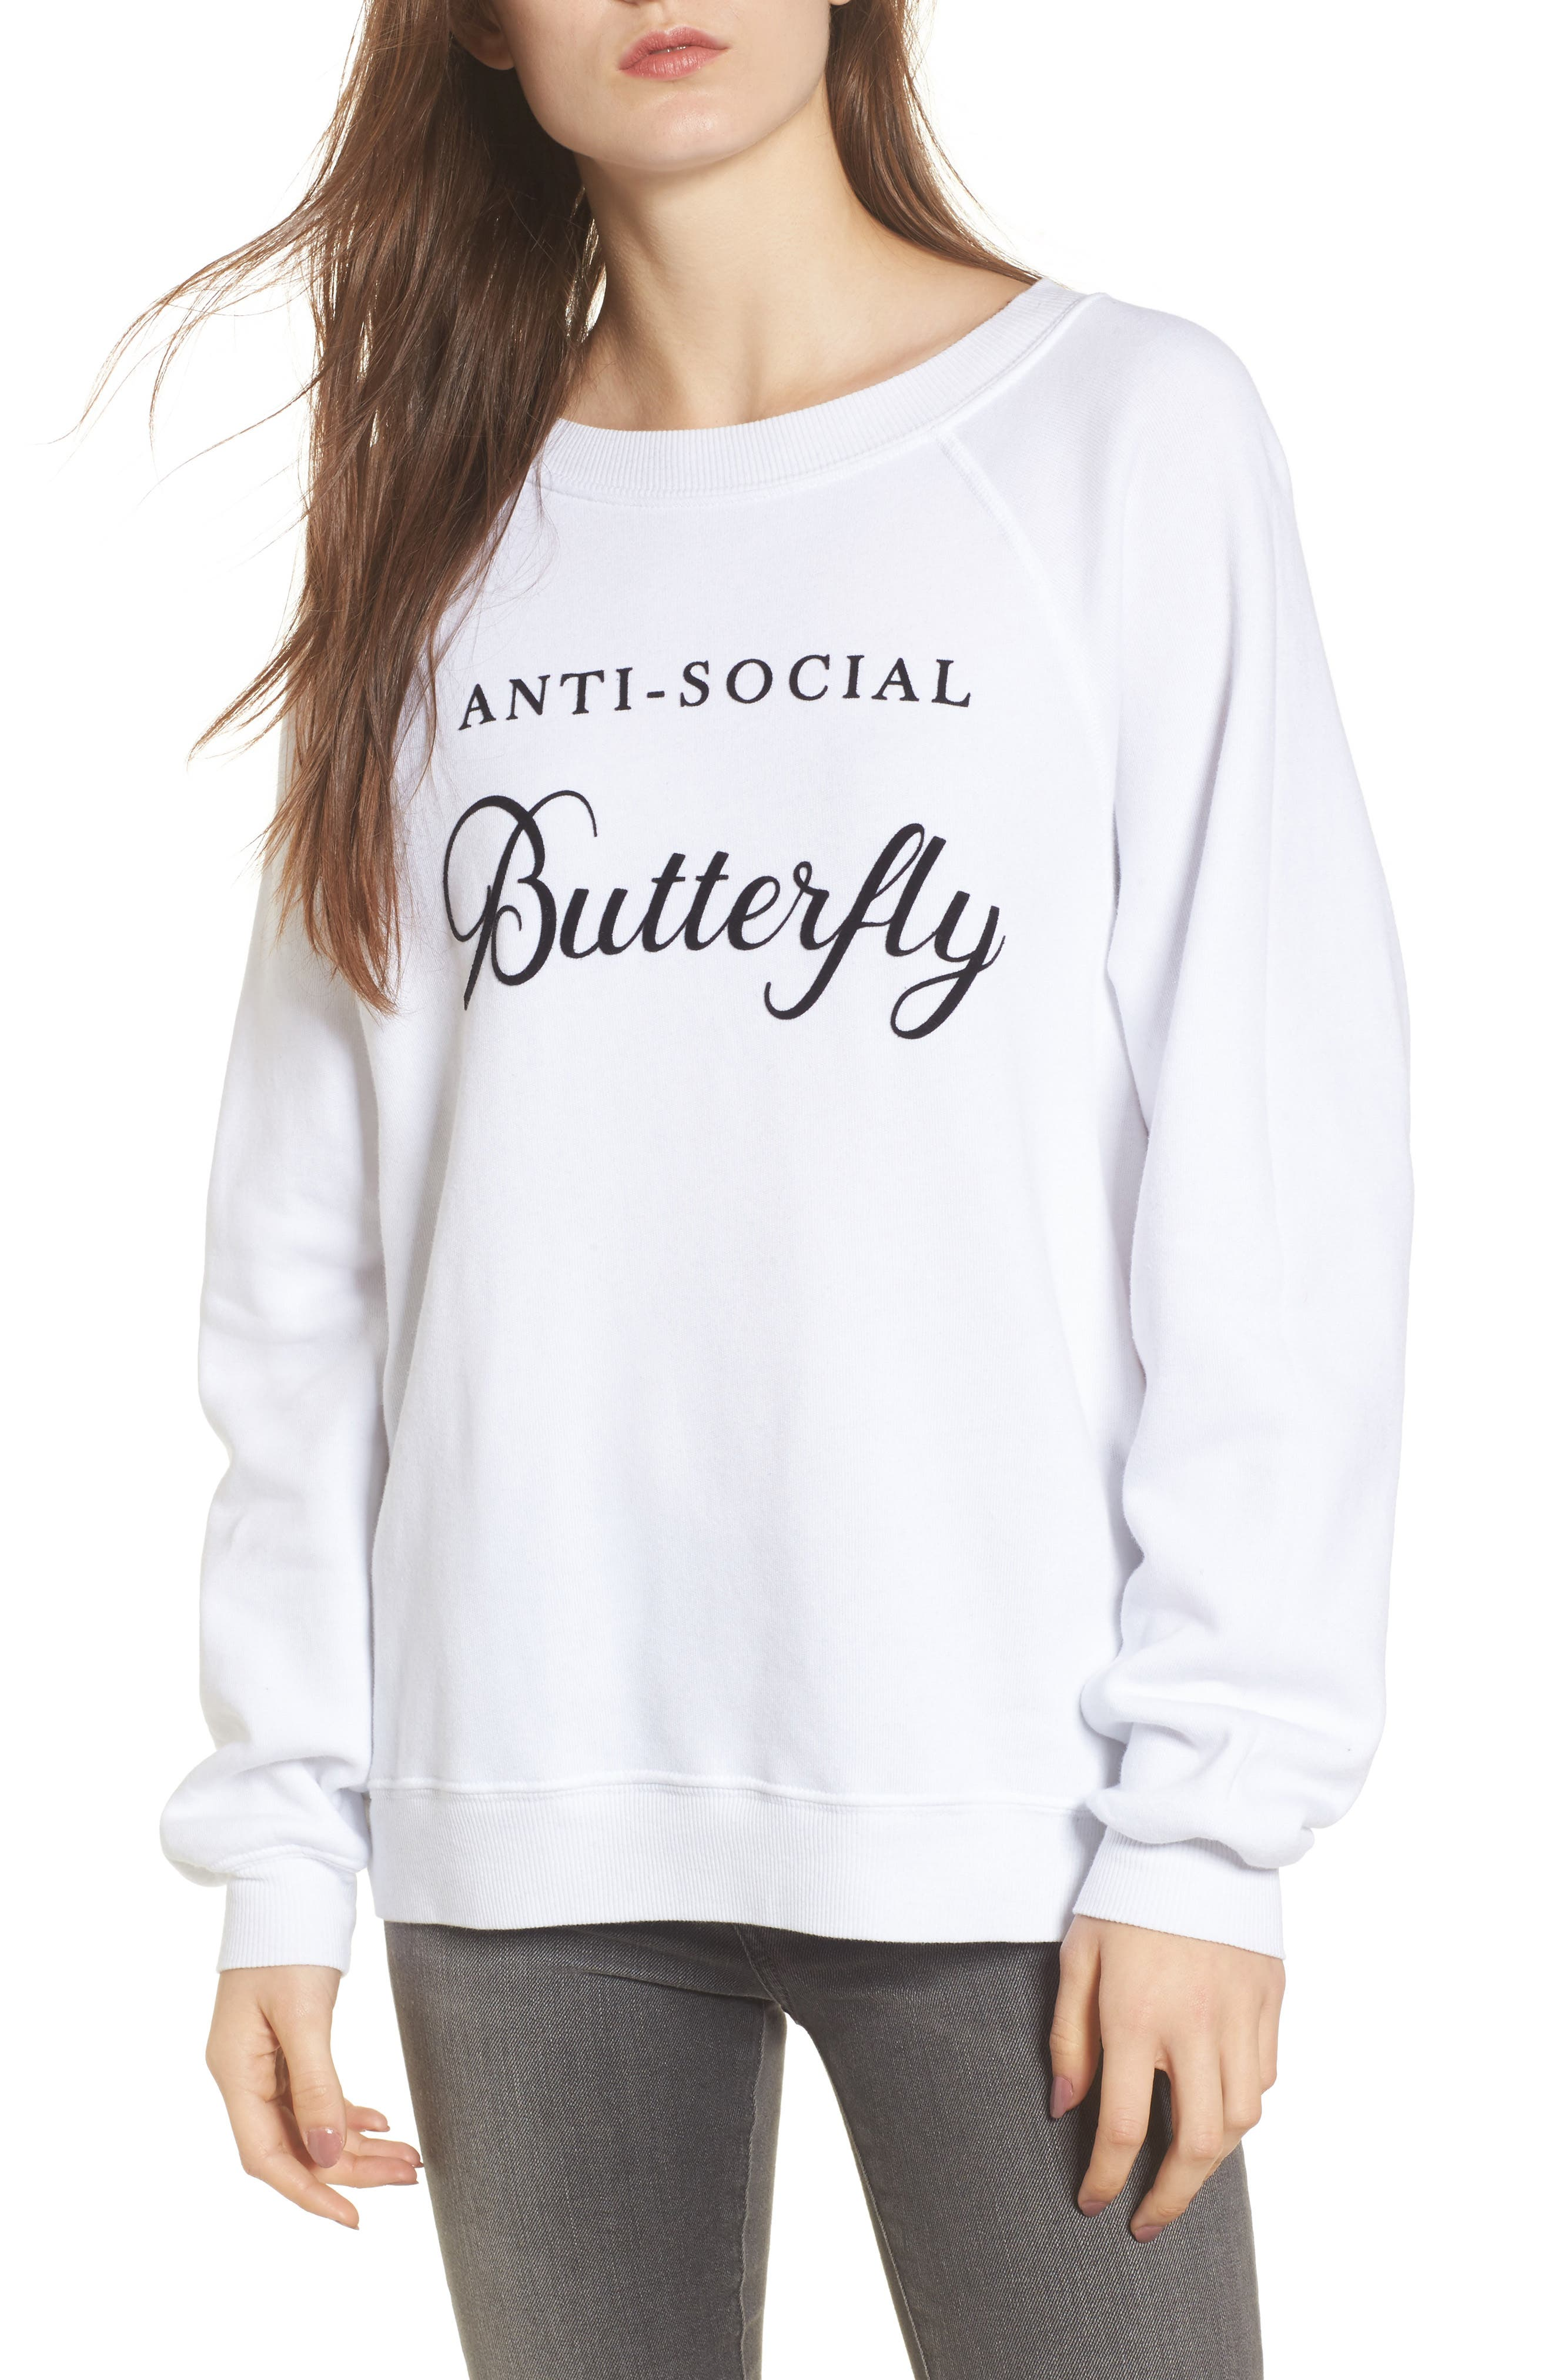 Anti-Social Butterfly Sweatshirt,                         Main,                         color, 100